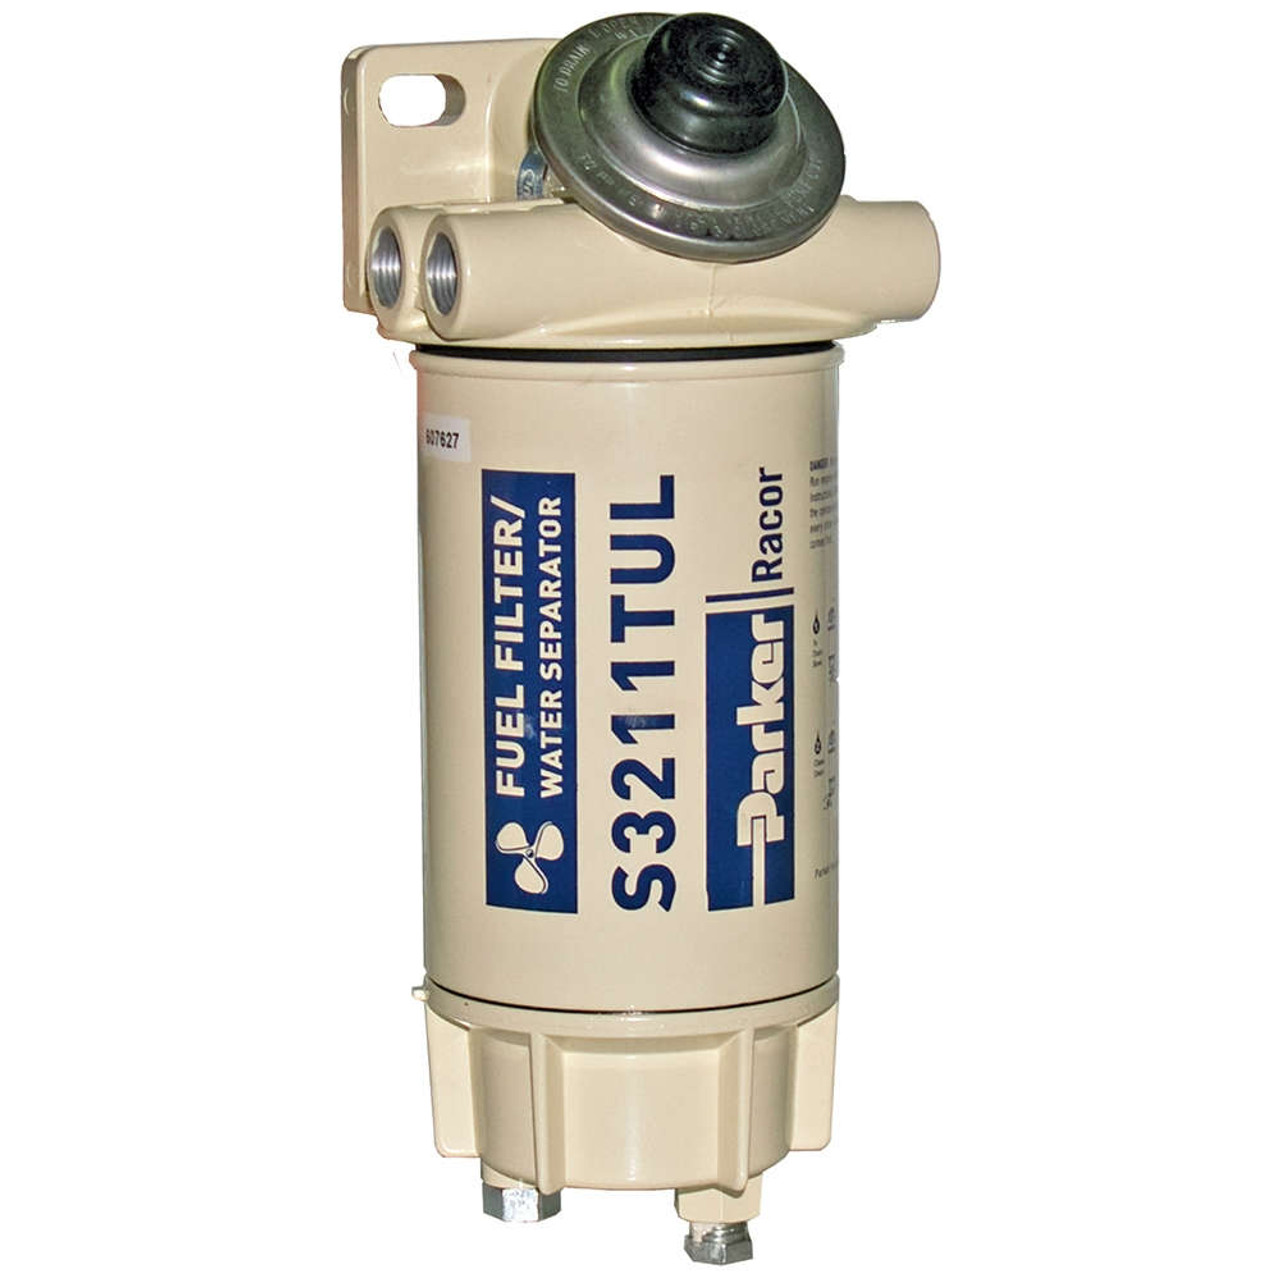 Racor Aquabloc Marine 3/8 in  60 GPH Spin-On Diesel Fuel Filter Water  Separator Assembly - 6 Qty